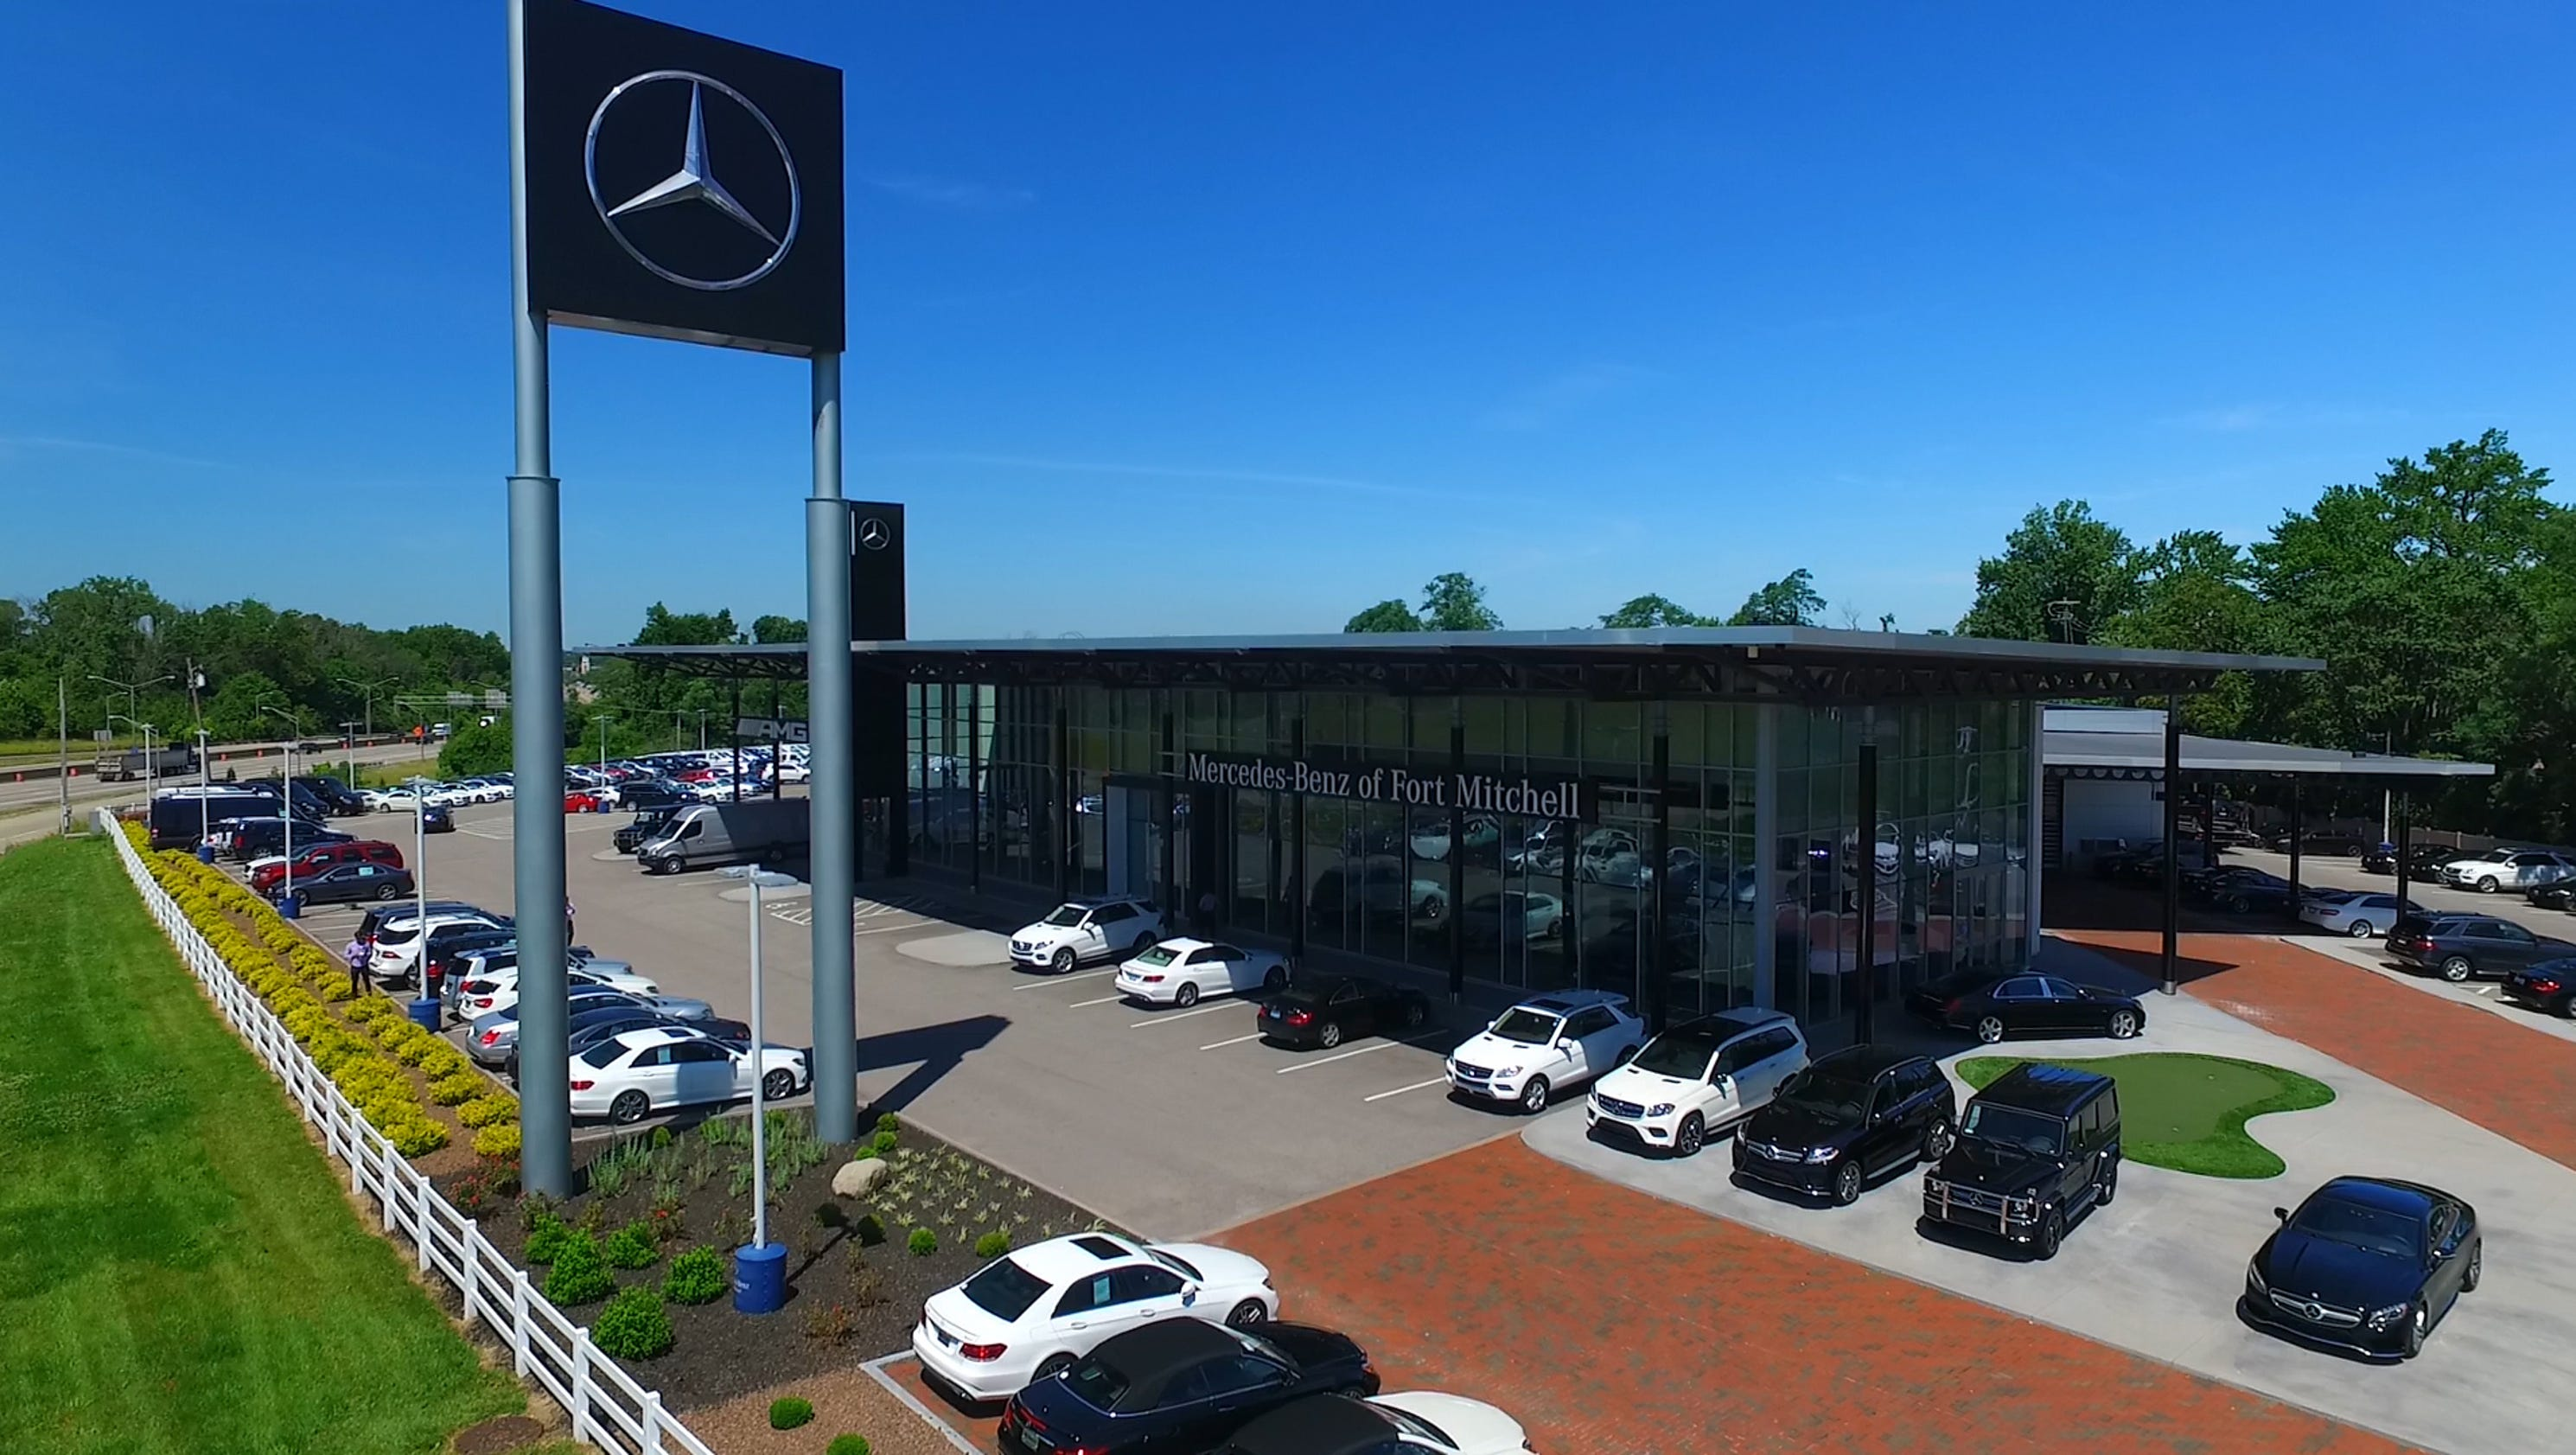 the general manager of the mercedes-benz dealership, as well as